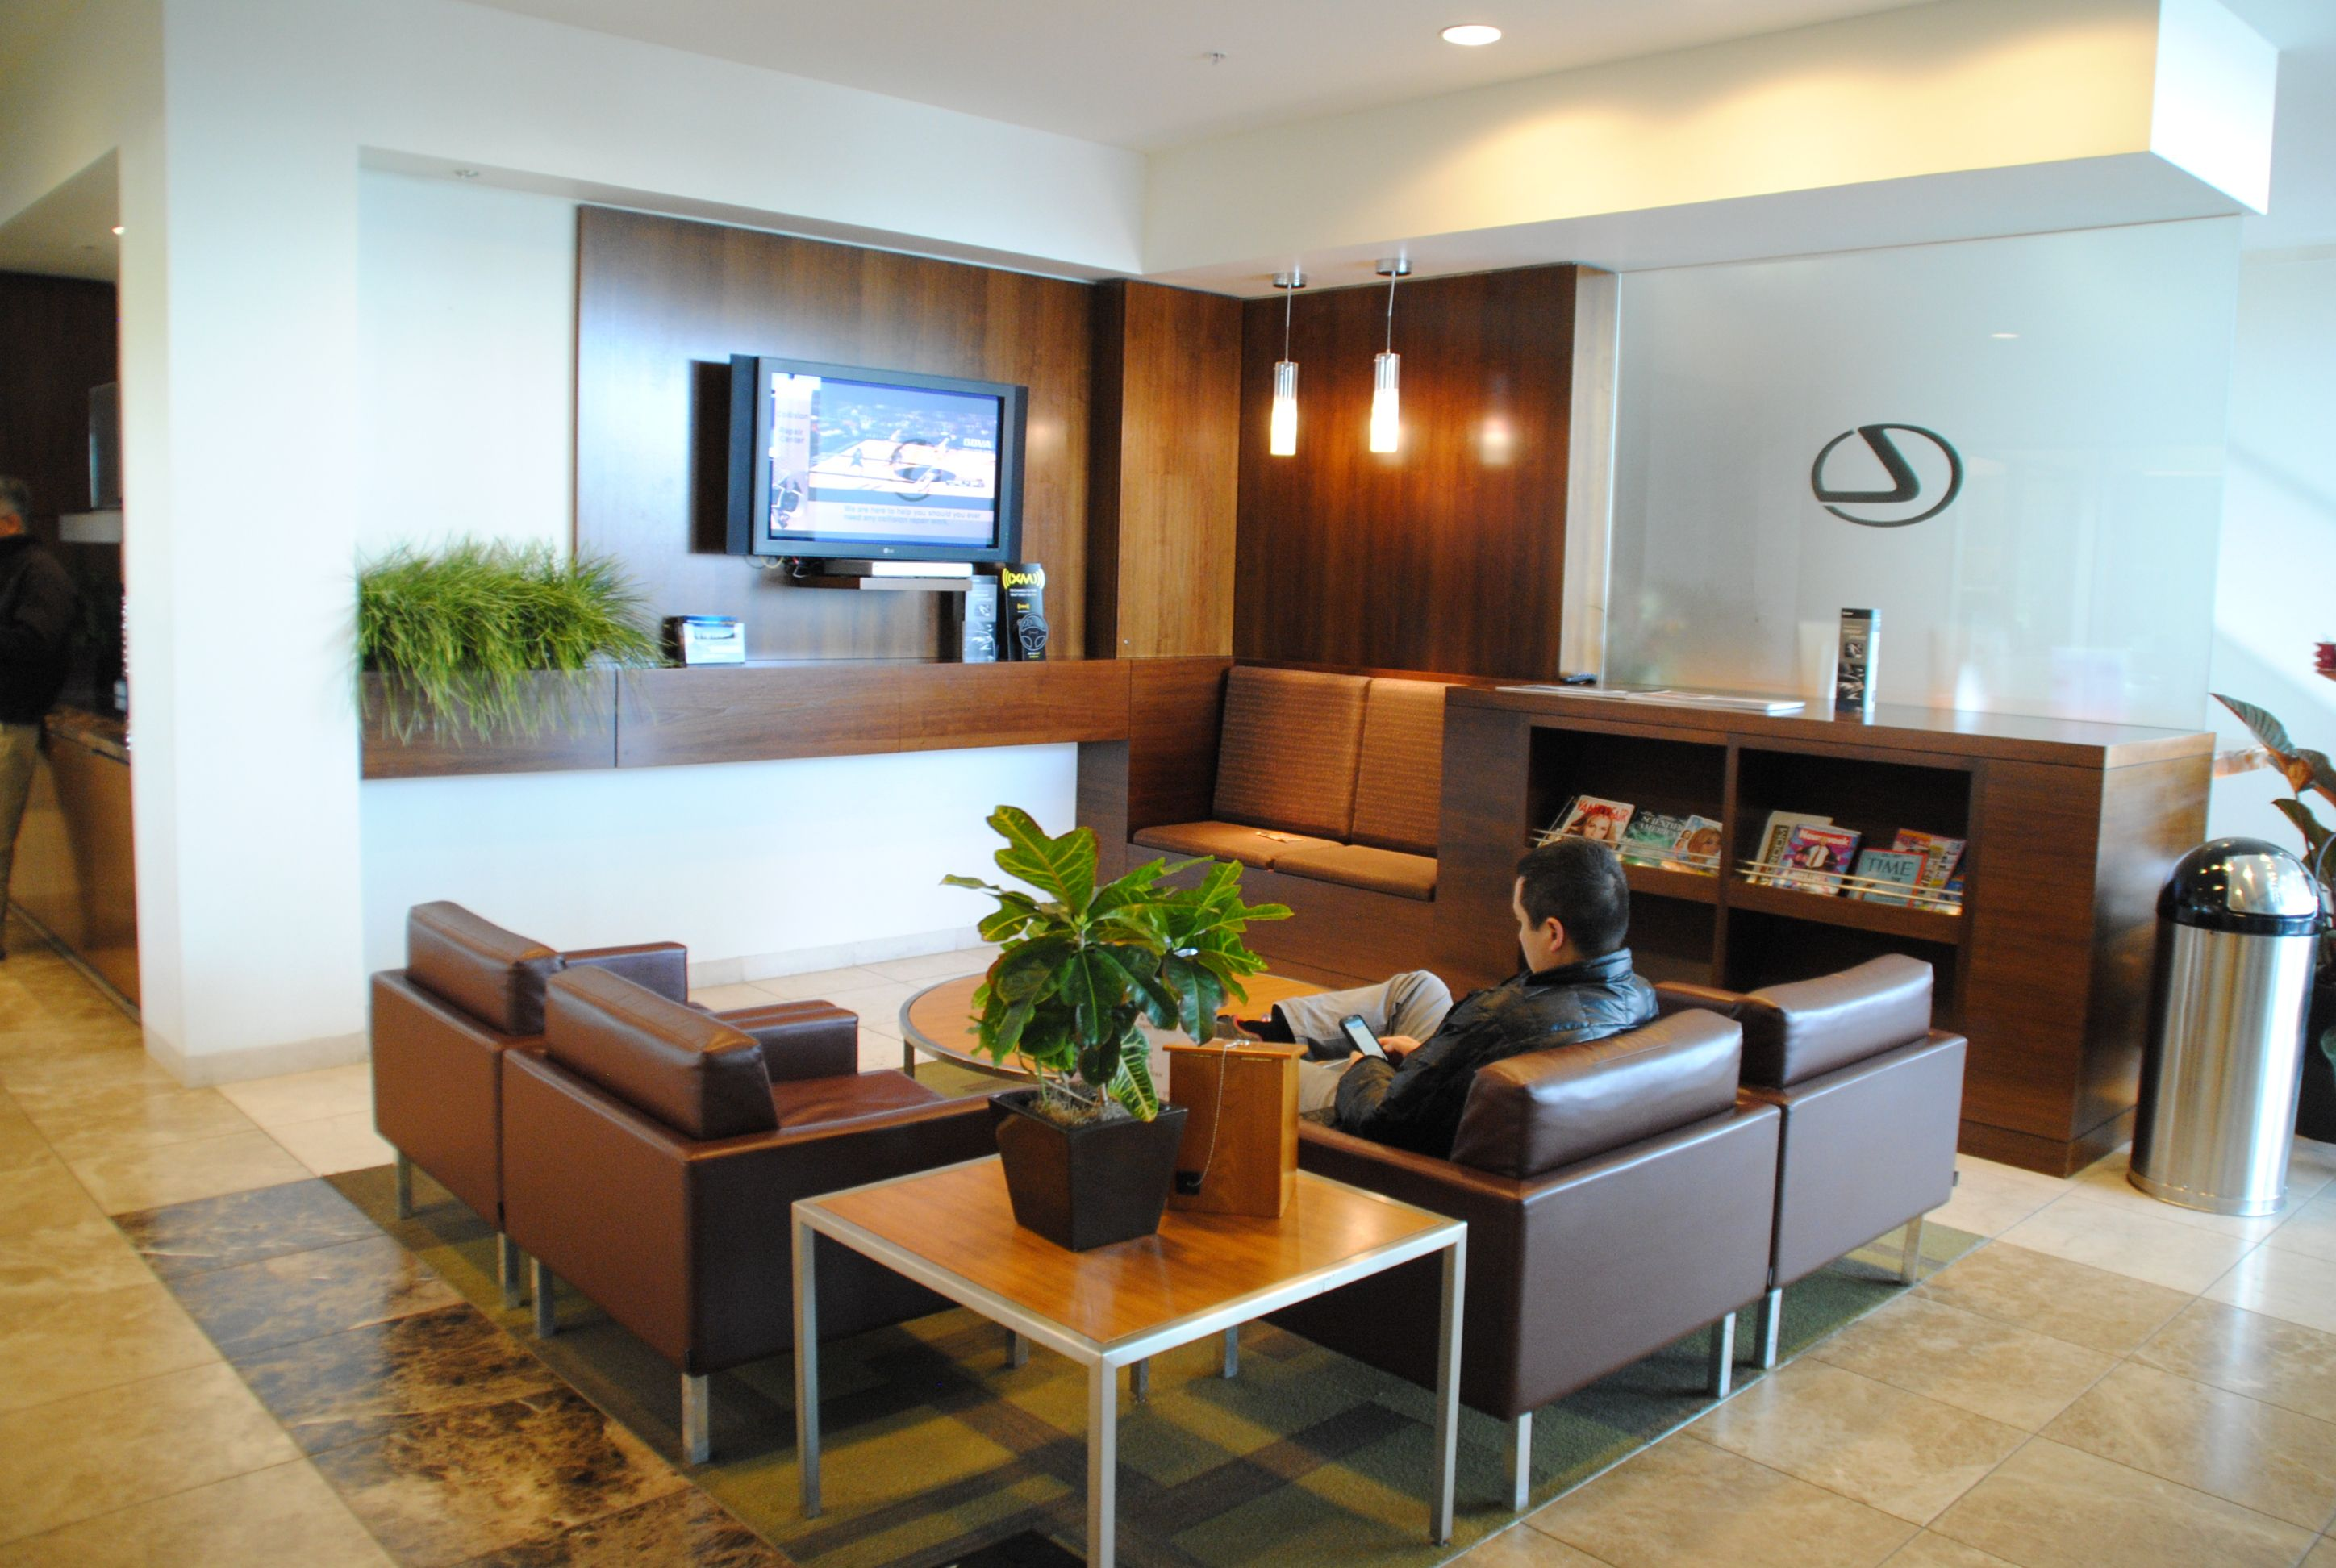 Pleasing Multiple Customer Lounge Areas Are Available While You Wait Home Interior And Landscaping Ologienasavecom